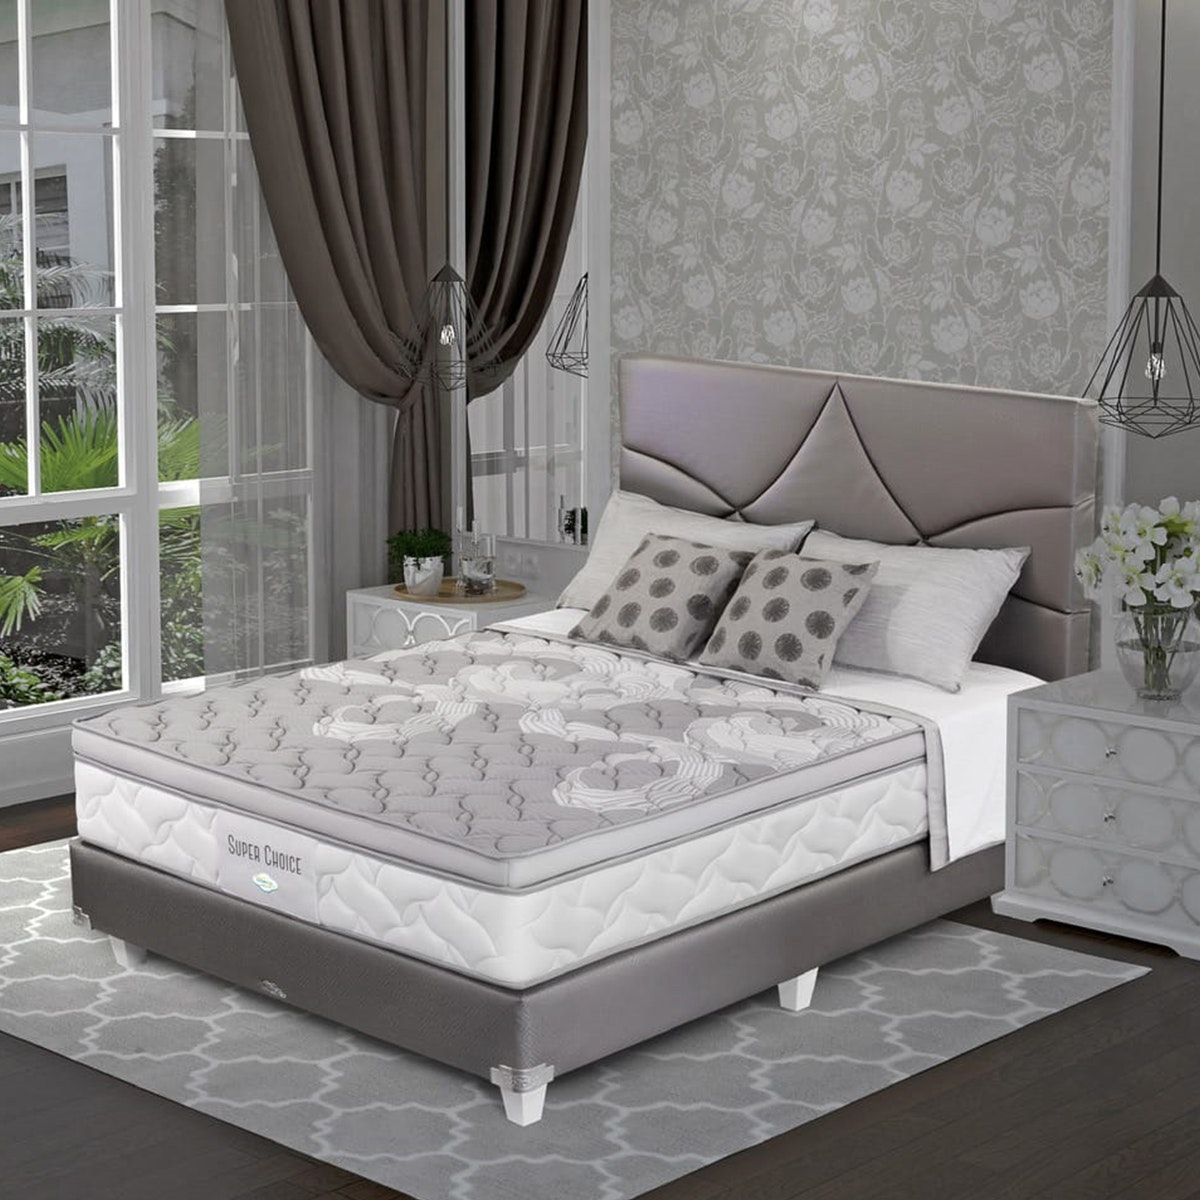 Comforta Kasur Super Choice Uk 100x200